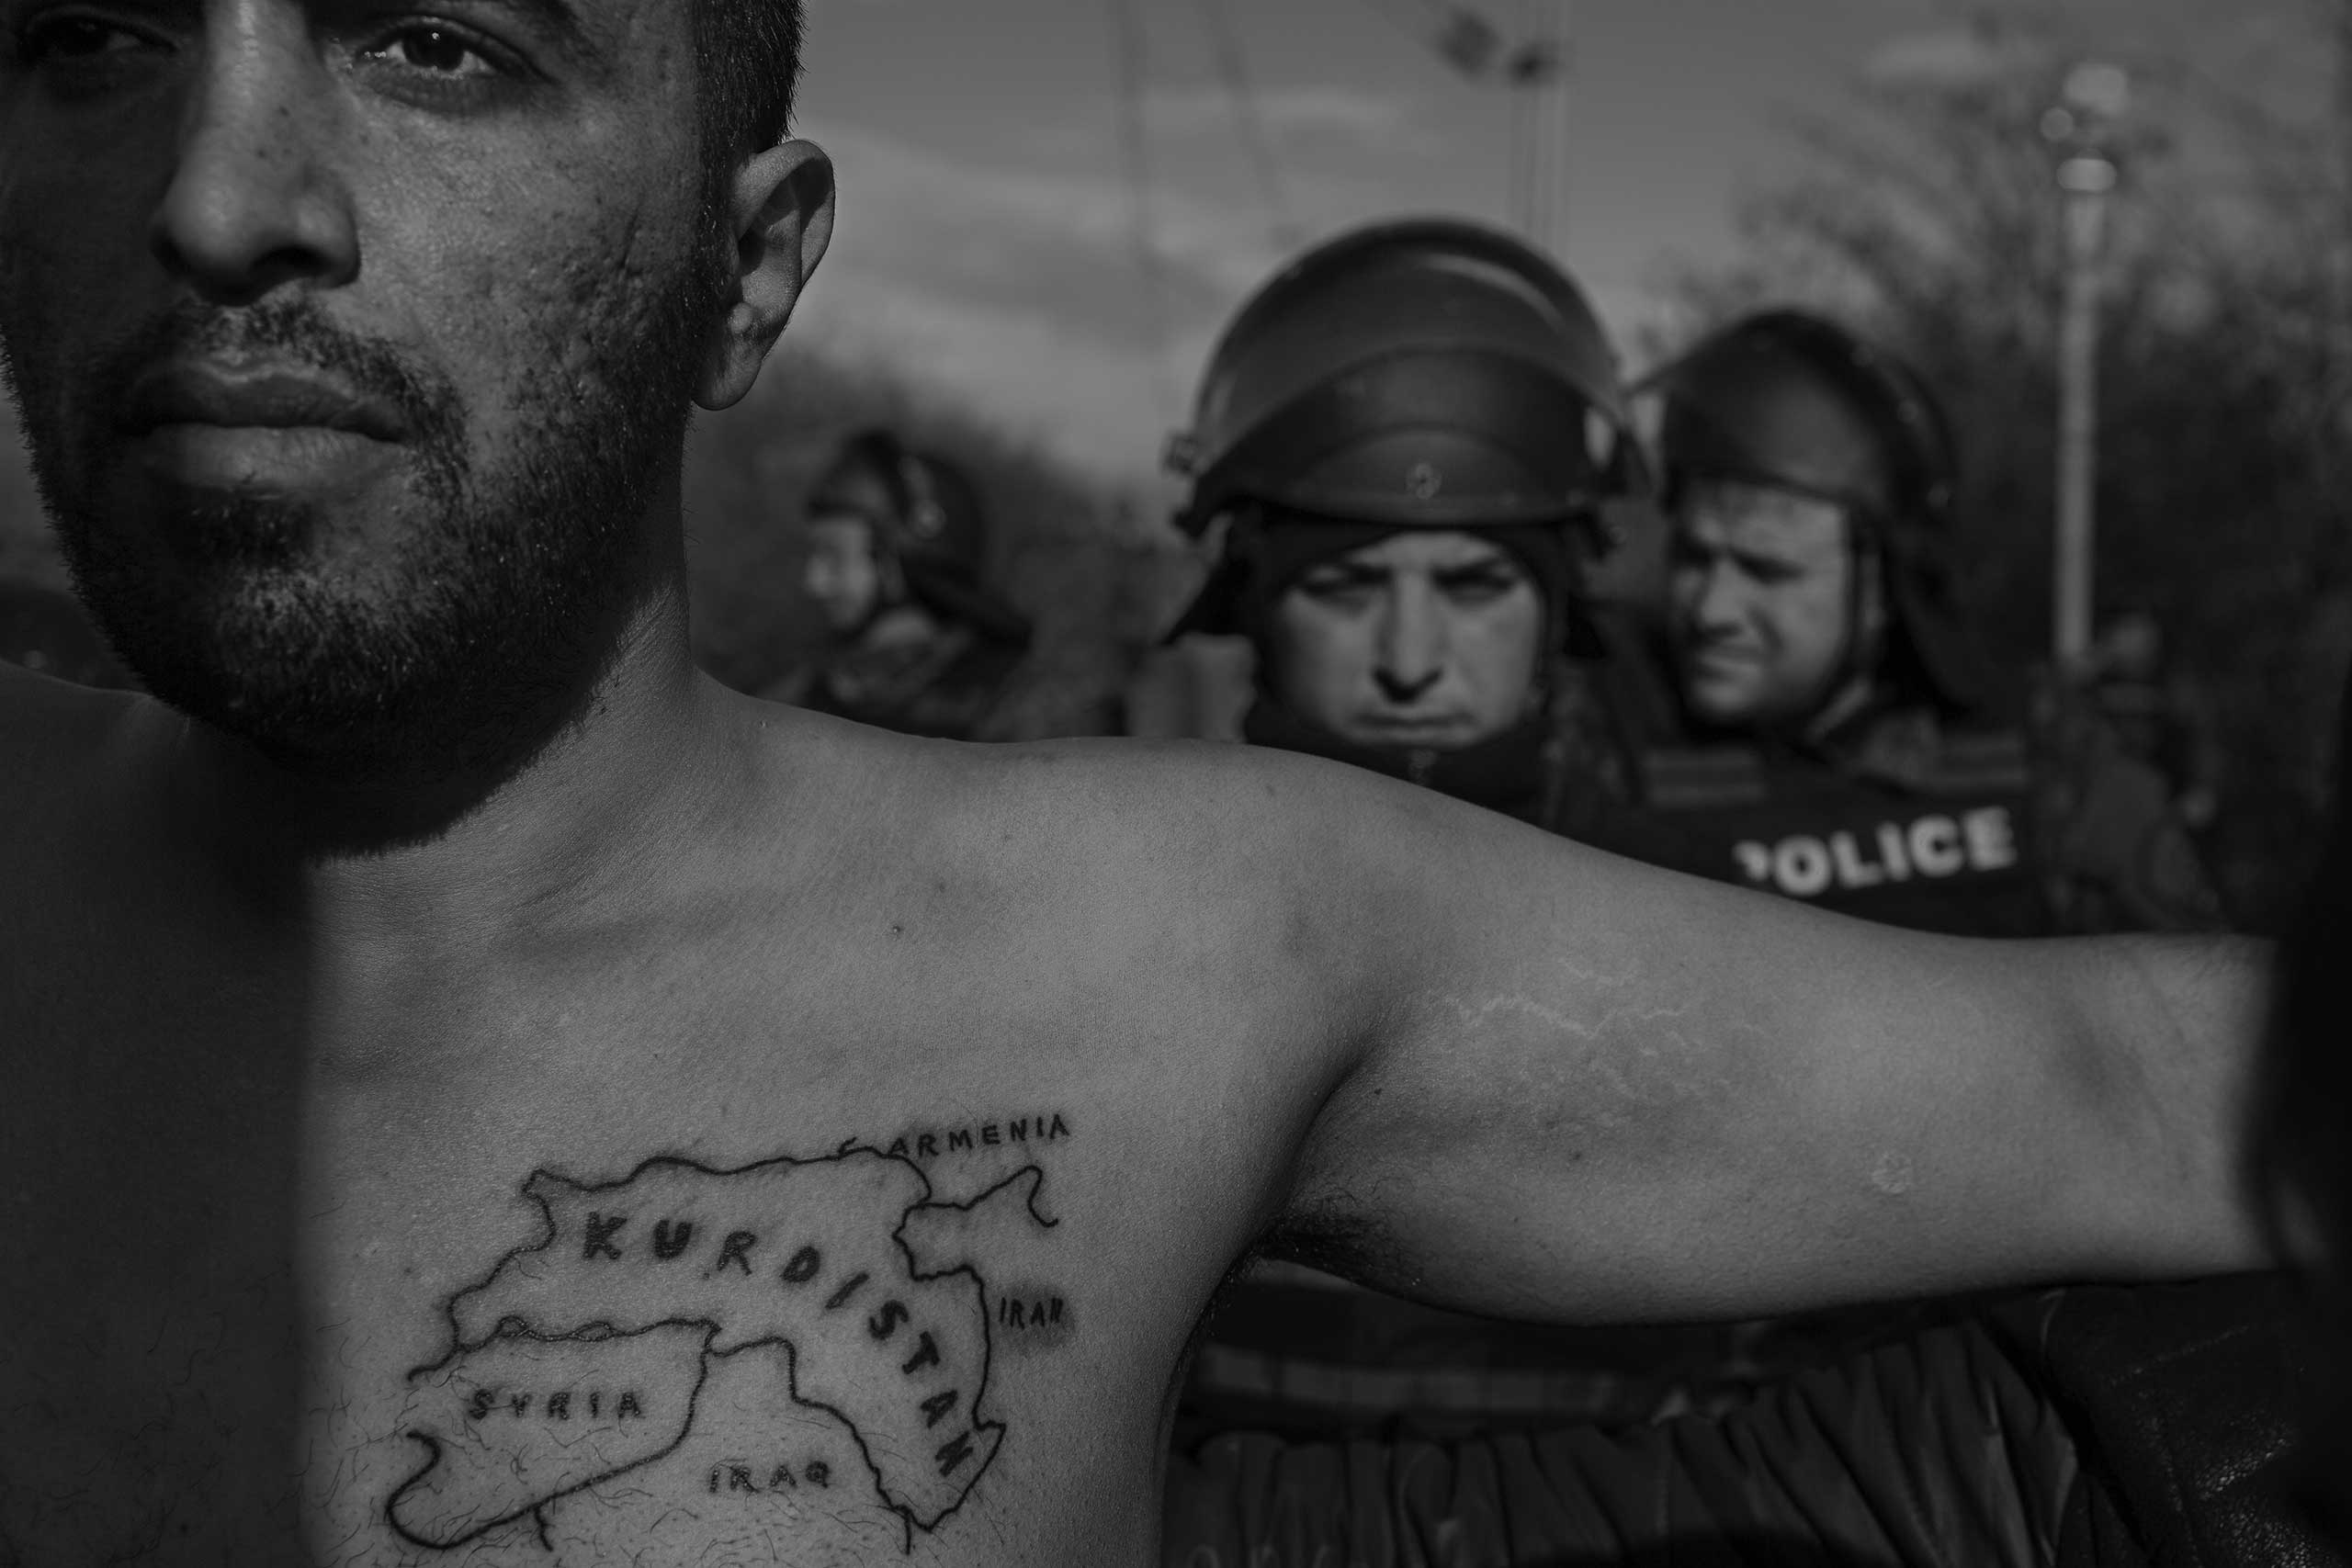 A man spreads his arms in a bid to defuse tensions between asylum seekers and police at a demonstration at the Macedonian border, Nov. 28, 2015.From  James Nachtwey: The Refugees' Lonely Journey